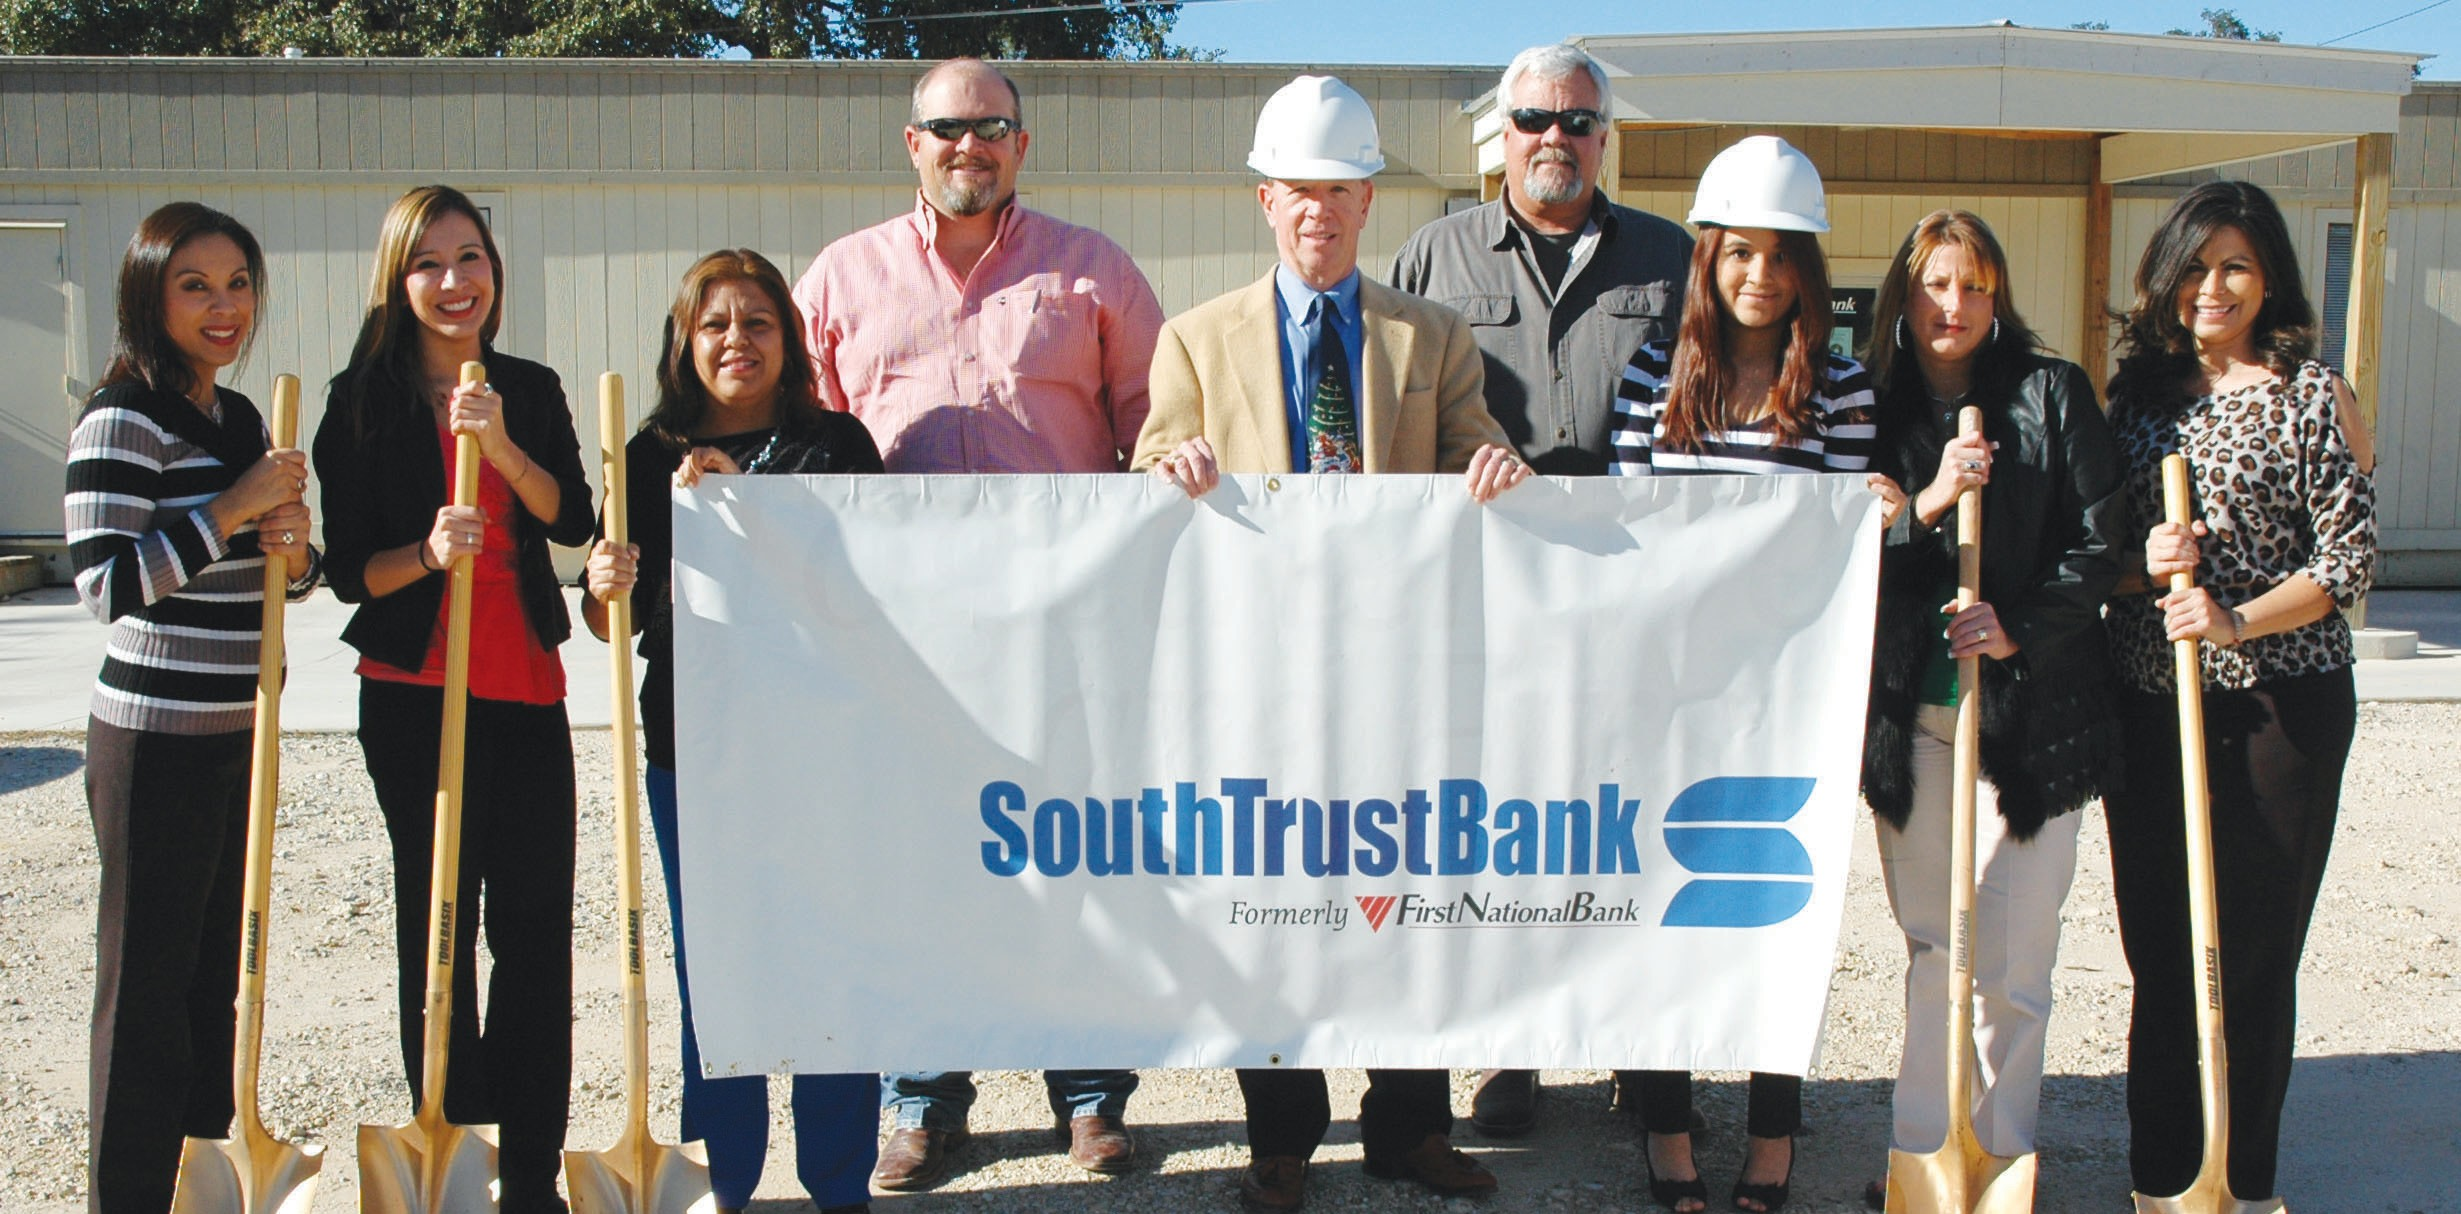 South Trust Bank (formerly First National Bank) held their groundbreaking ceremony recently. Construction for the full service bank – a 5,600 square foot building with four drive through lanes and ATM – will begin soon with Wells Construction as the contractor. Left to right are Lisa Contreras, Sabrina Casares, Irma Martinez, Jess Kemp, Wells Construction; Wade Hodgin, South Trust Bank President; Roger Wells, Wells Construction, Ashley Talamantez, Pandy Salinas and Tillie Ambriz.